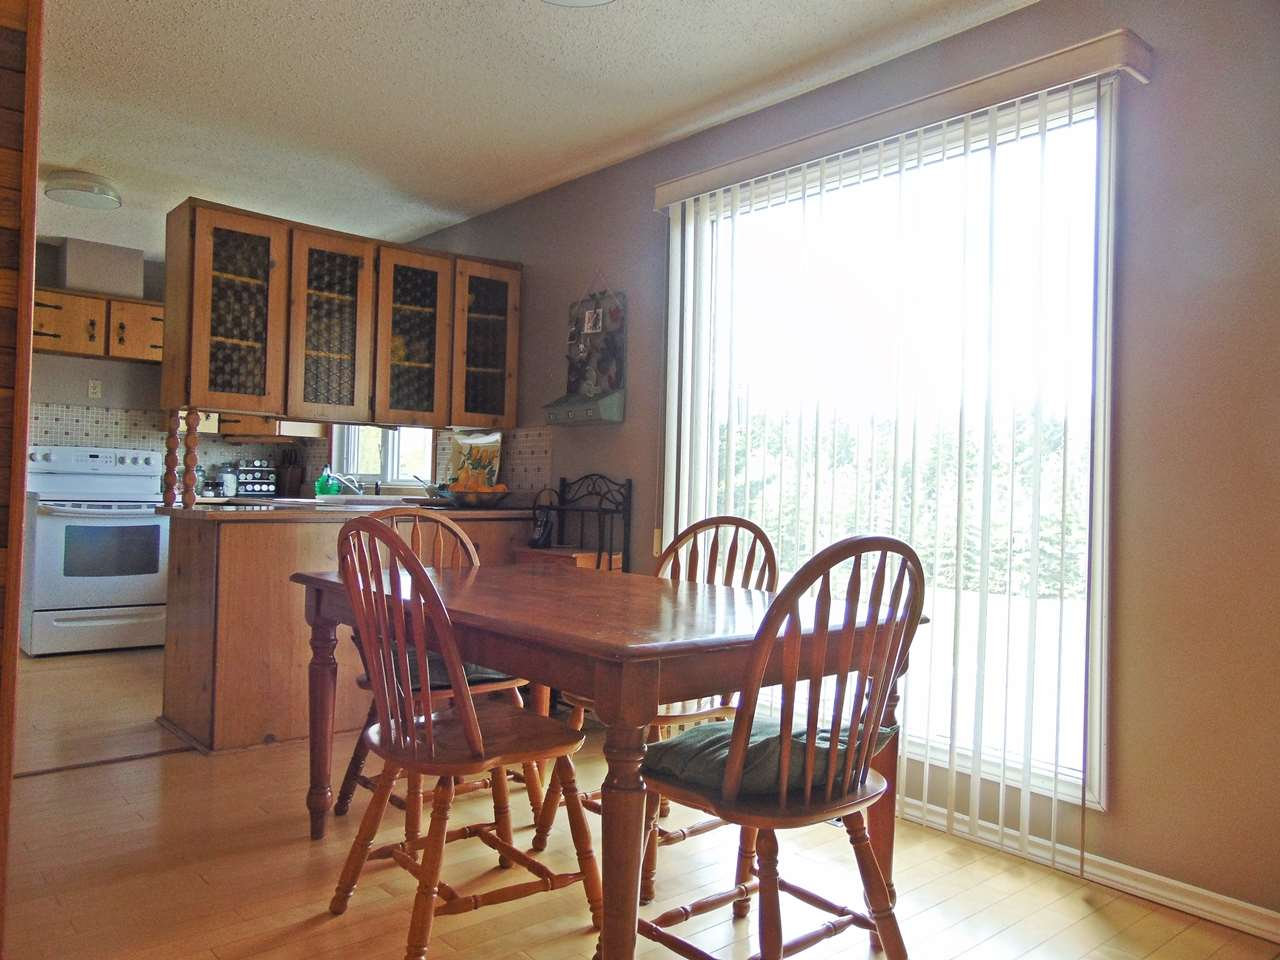 Photo 13: 57130 Rg Rd 230: Rural Sturgeon County House for sale : MLS(r) # E4064722